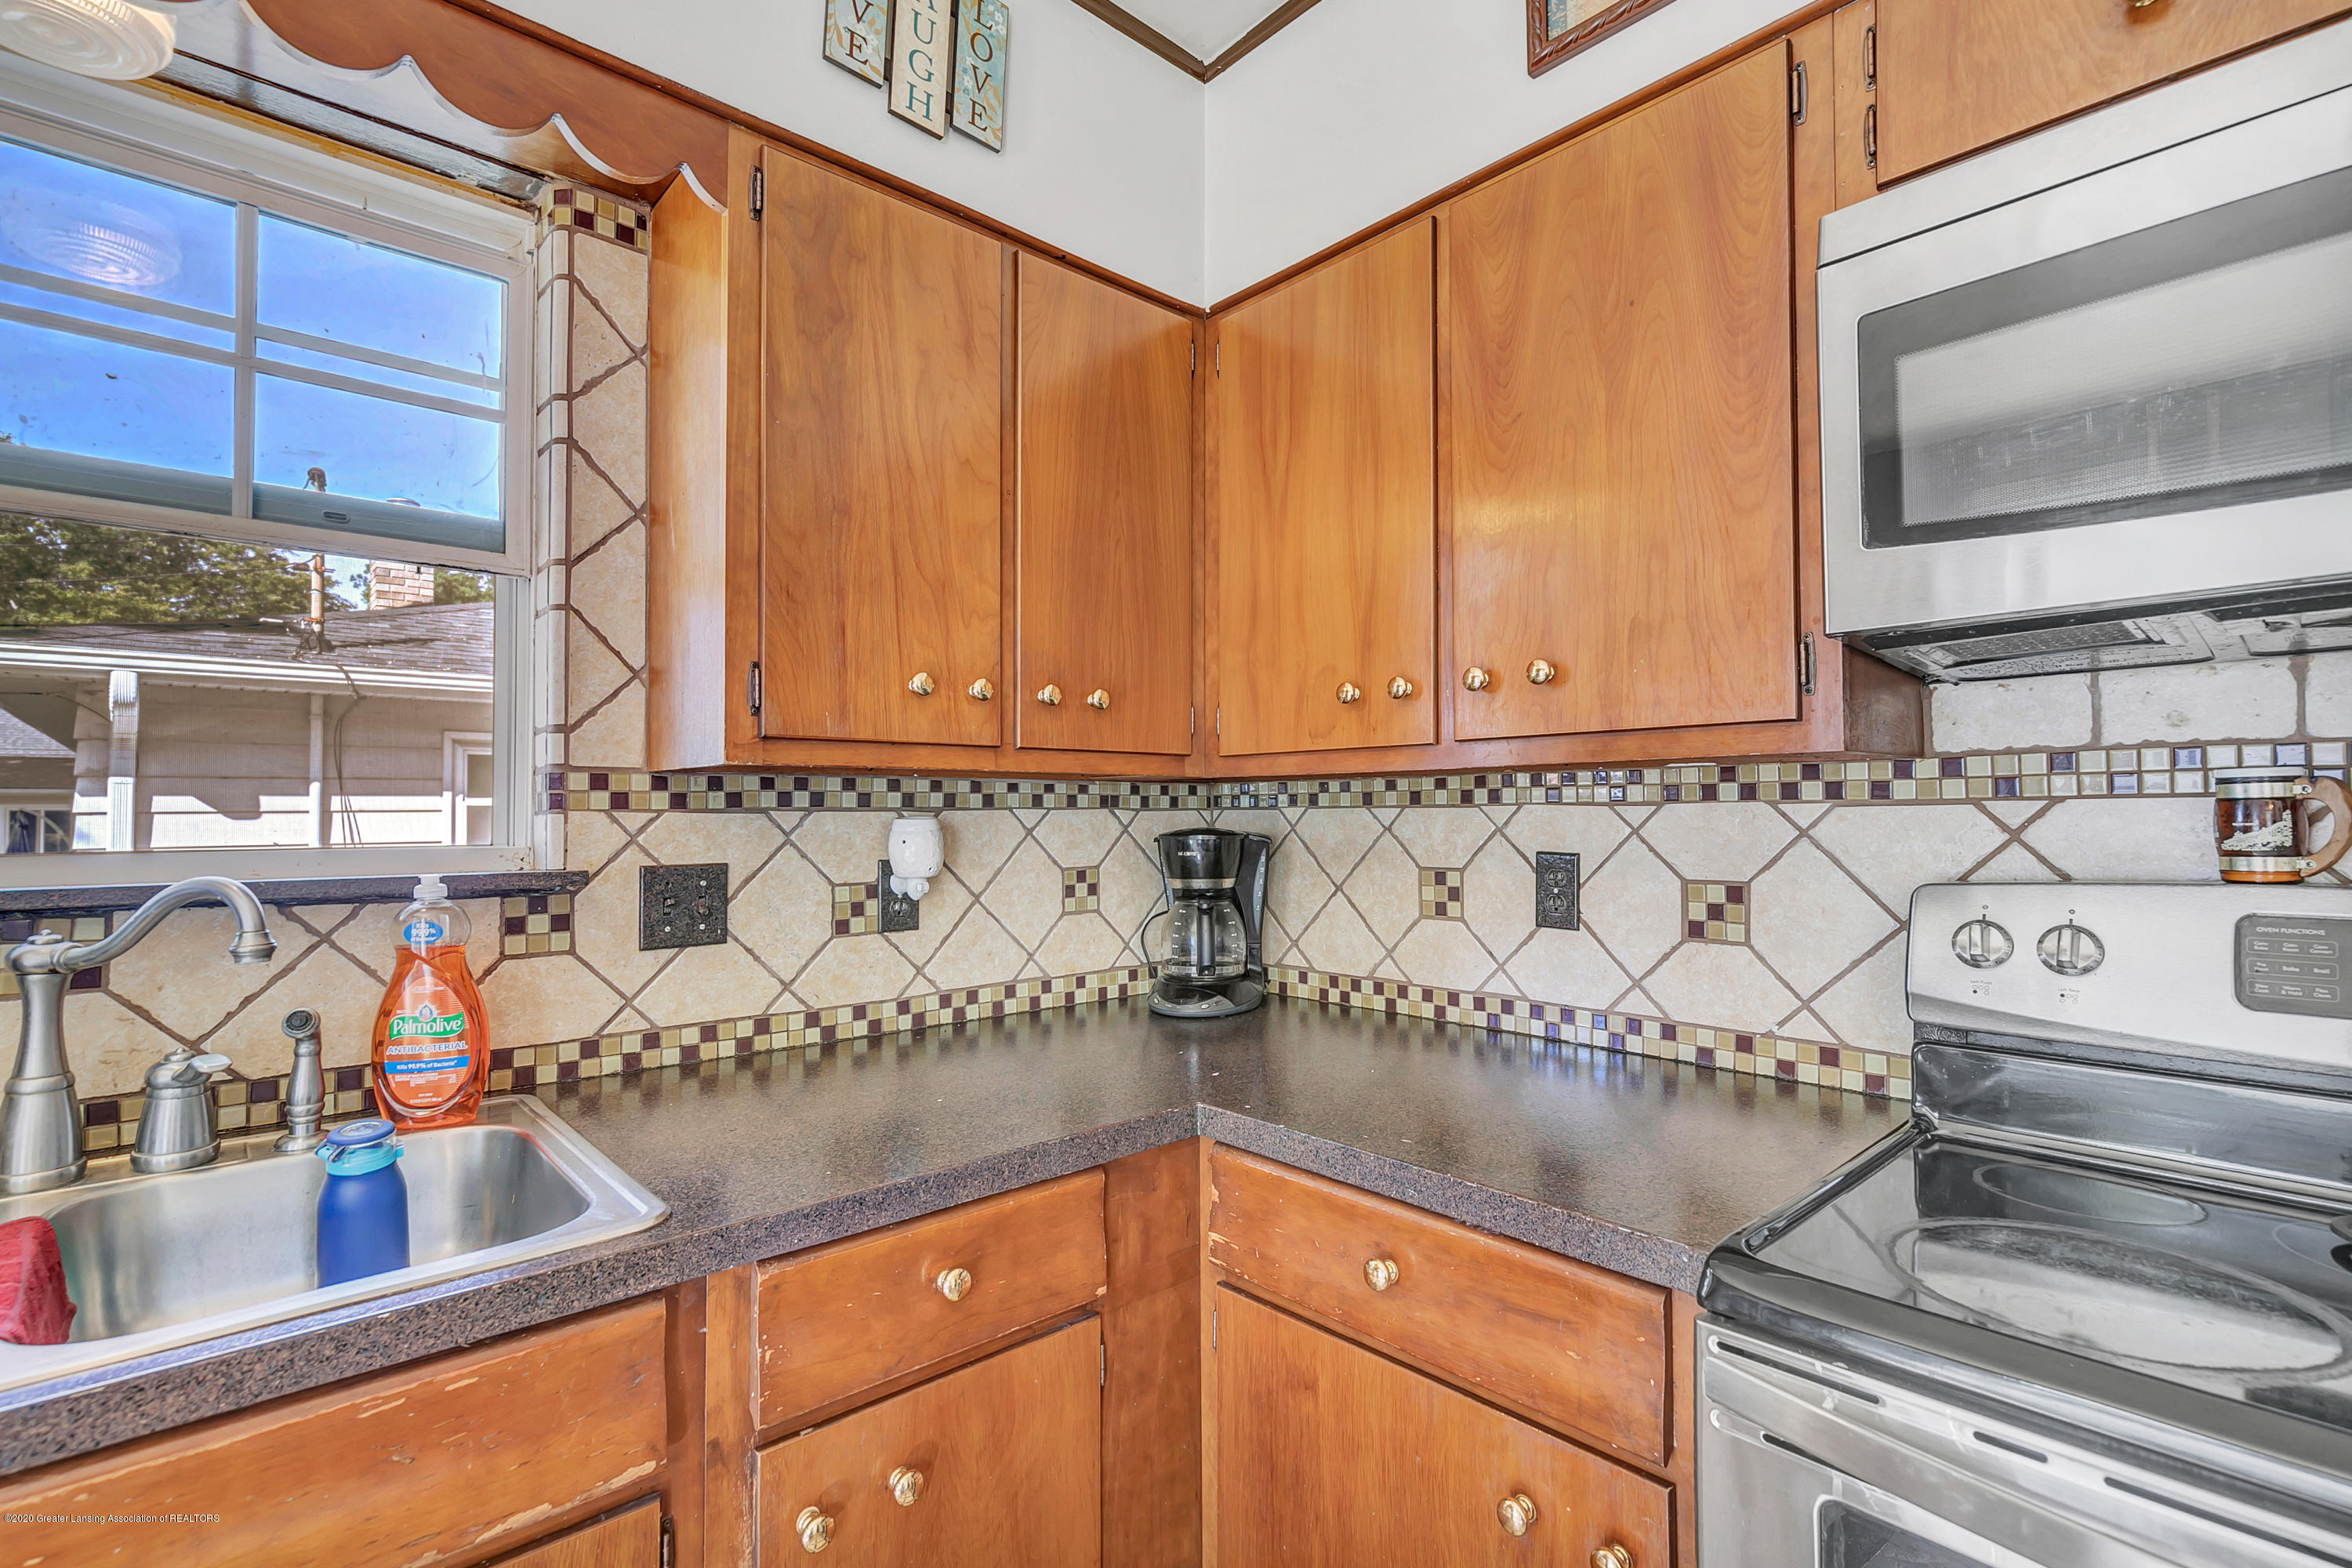 2844 S Deerfield Ave - 9I3A2567 - 9